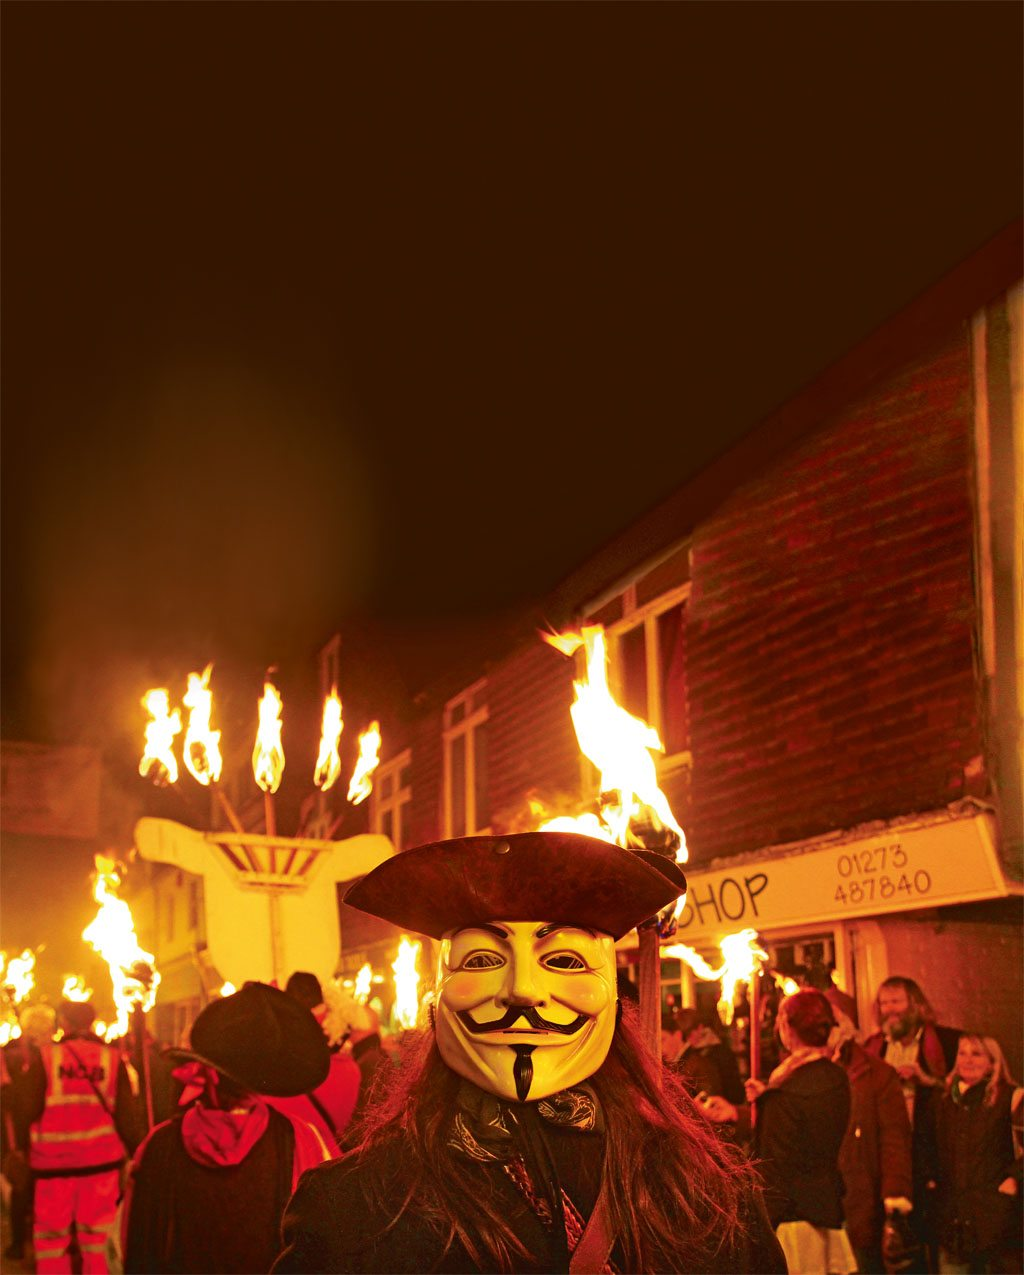 Guy Fawkes in East Sussex. Photo: Lazar Gergos